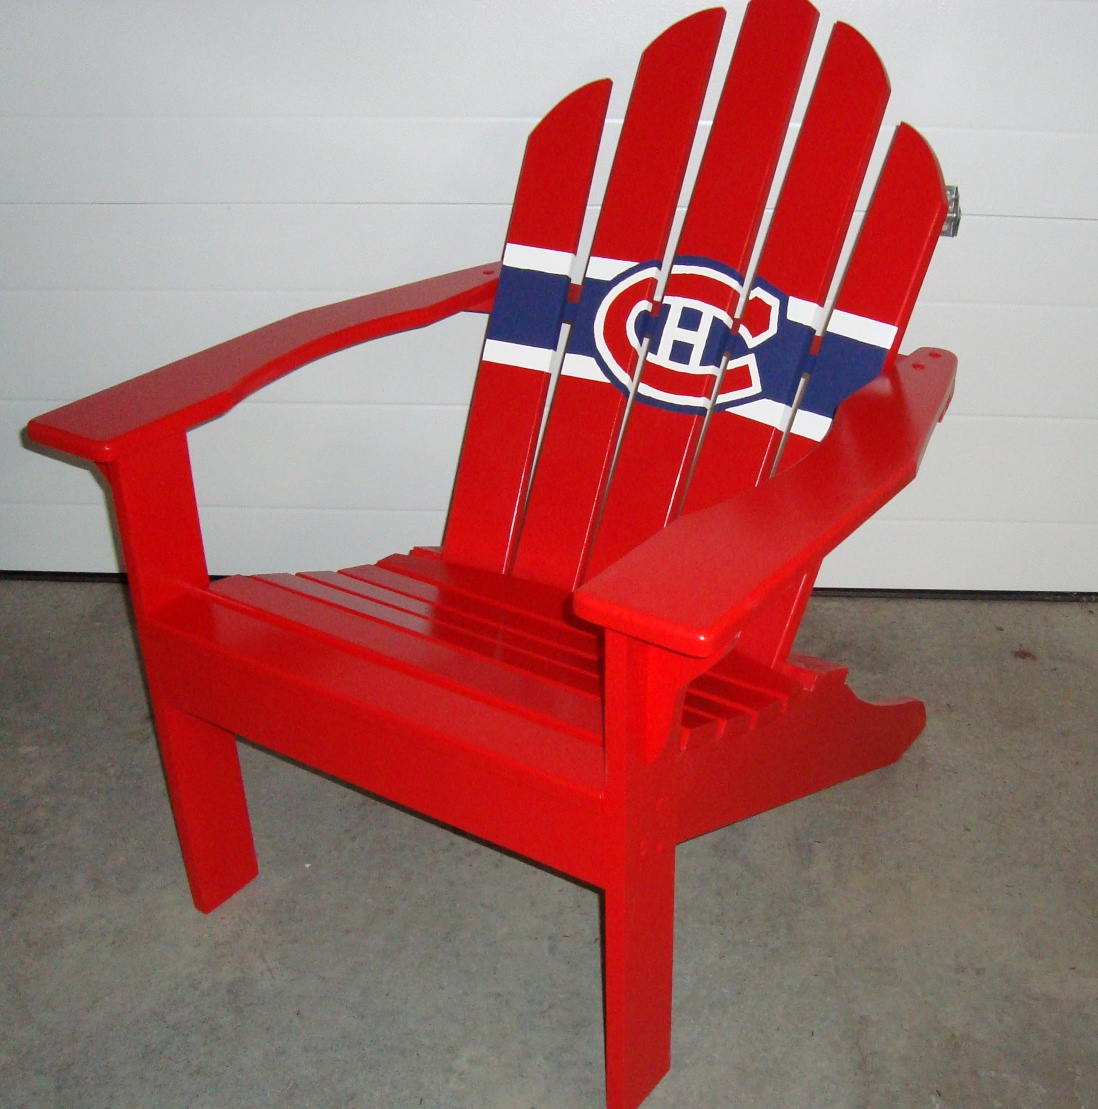 Margaritaville Chairs For Sale Chair In Spanish Follow Your Heart Woodworking My Adirondack